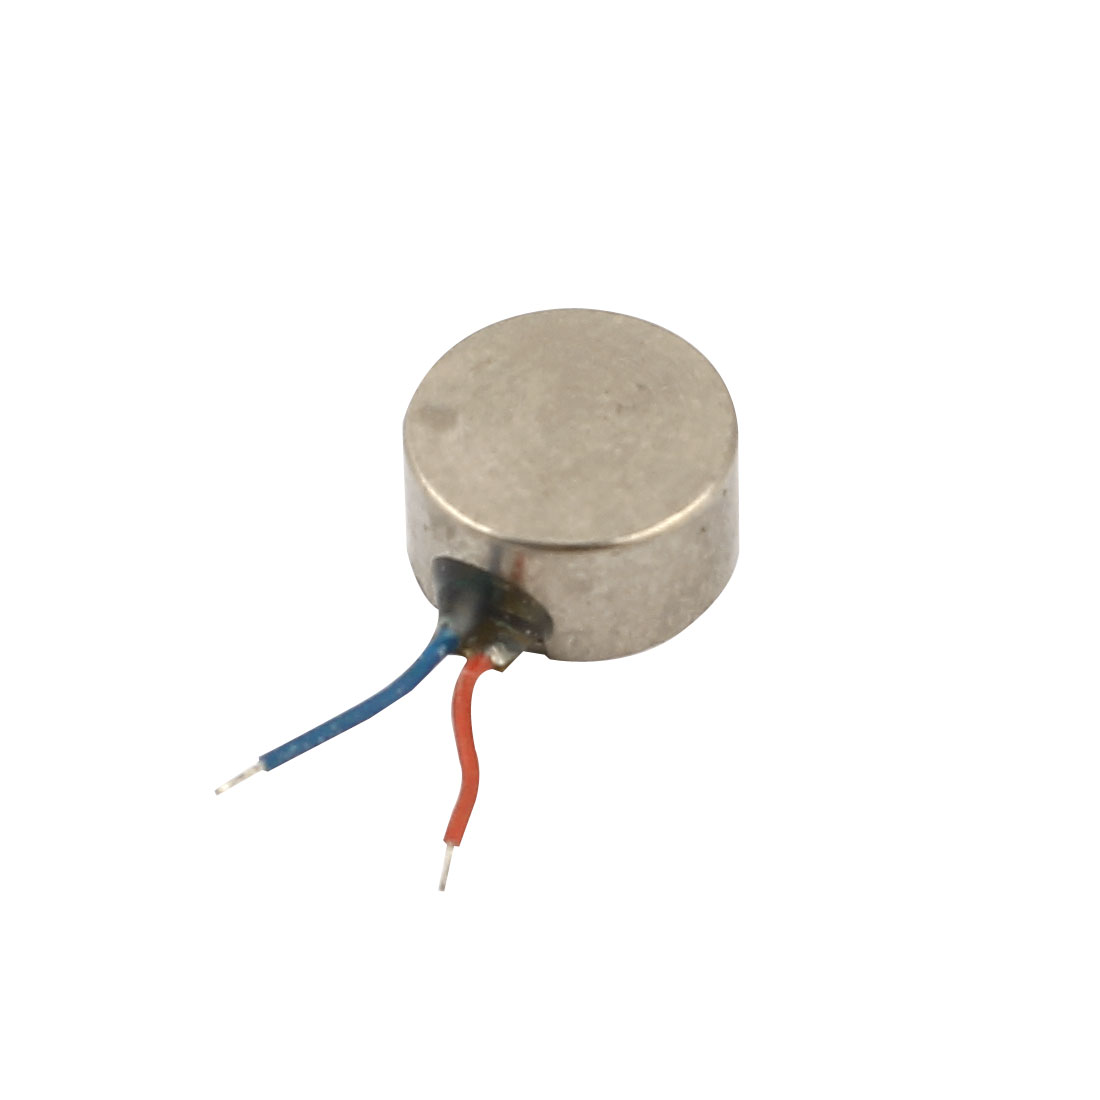 9mmx4mm Flat Button Vibrating Vibration Motor DC 3V 13000RPM for Cellphone